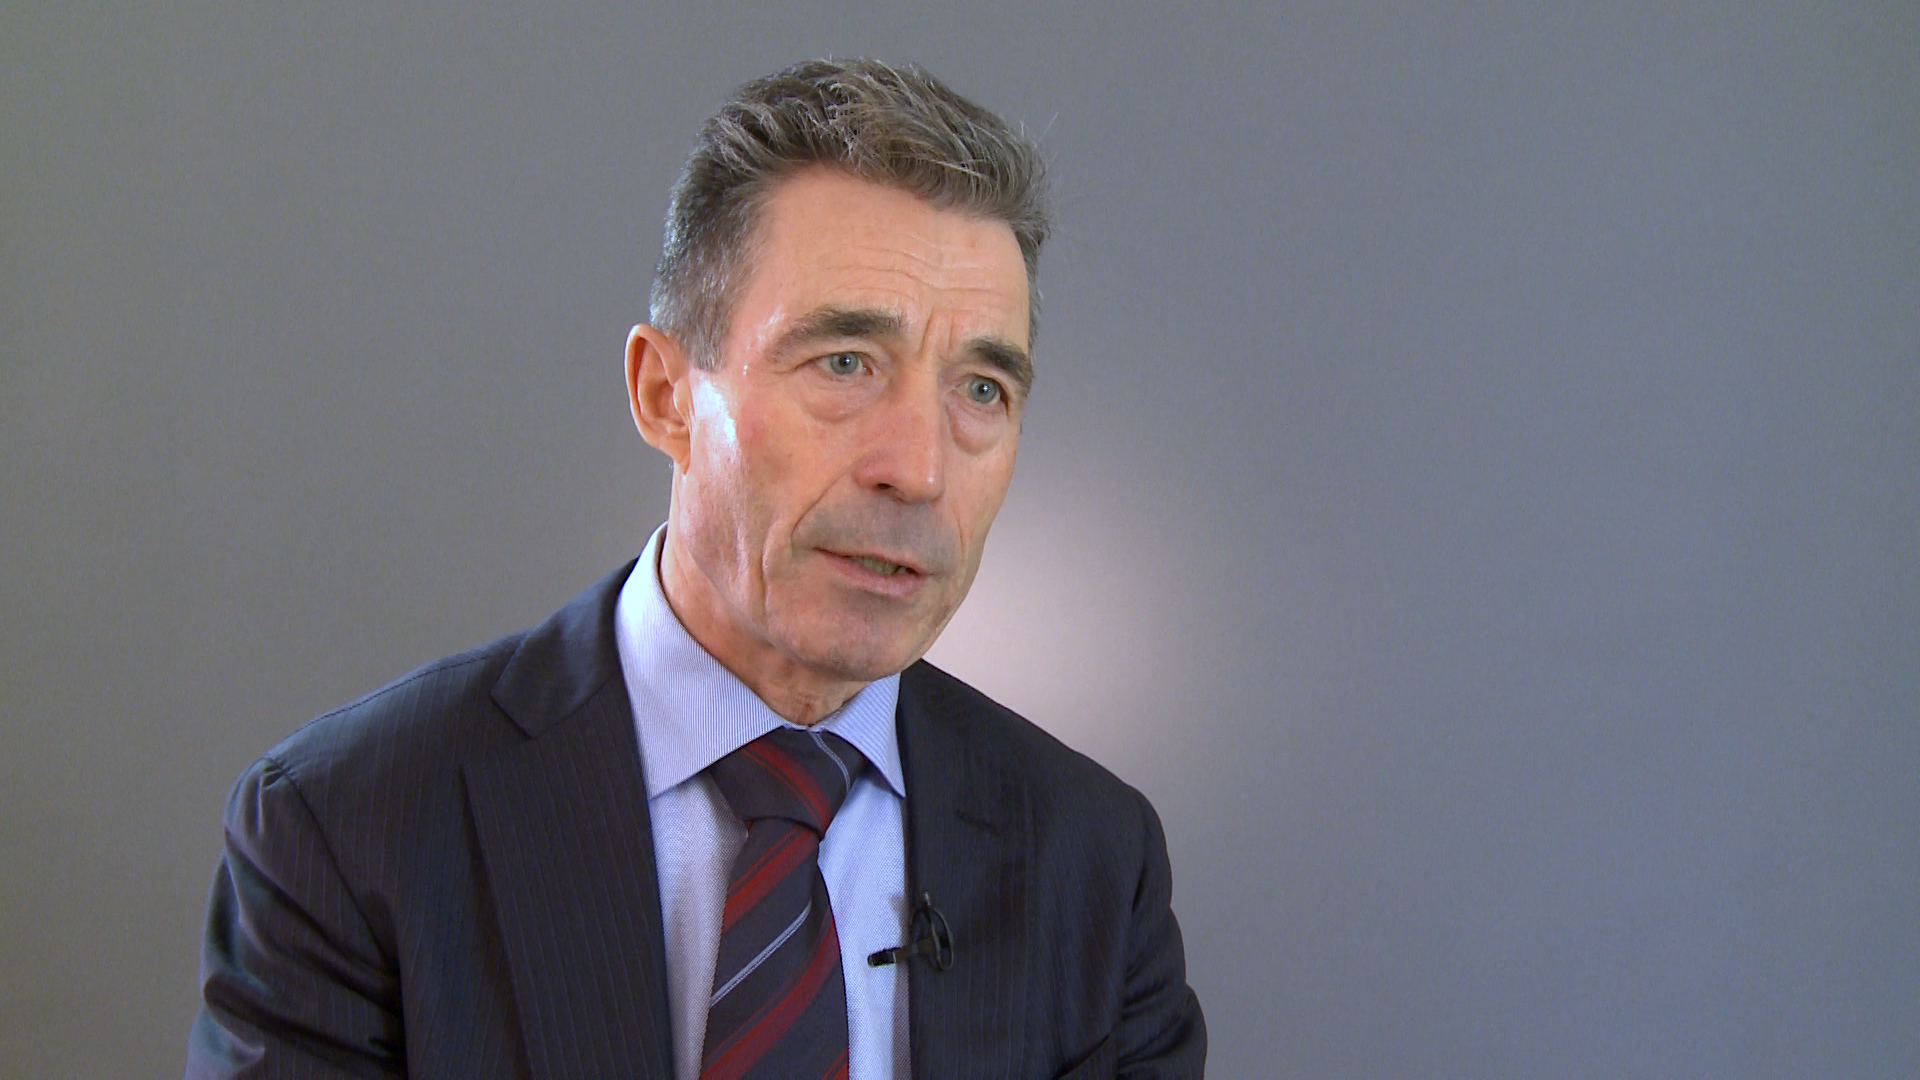 Former secretary general of NATO Anders Fogh Rasmussen was the first Western politician who started talking about Russian supporting of NGOs. PHOTO: Re:Baltica/Mistrus Media